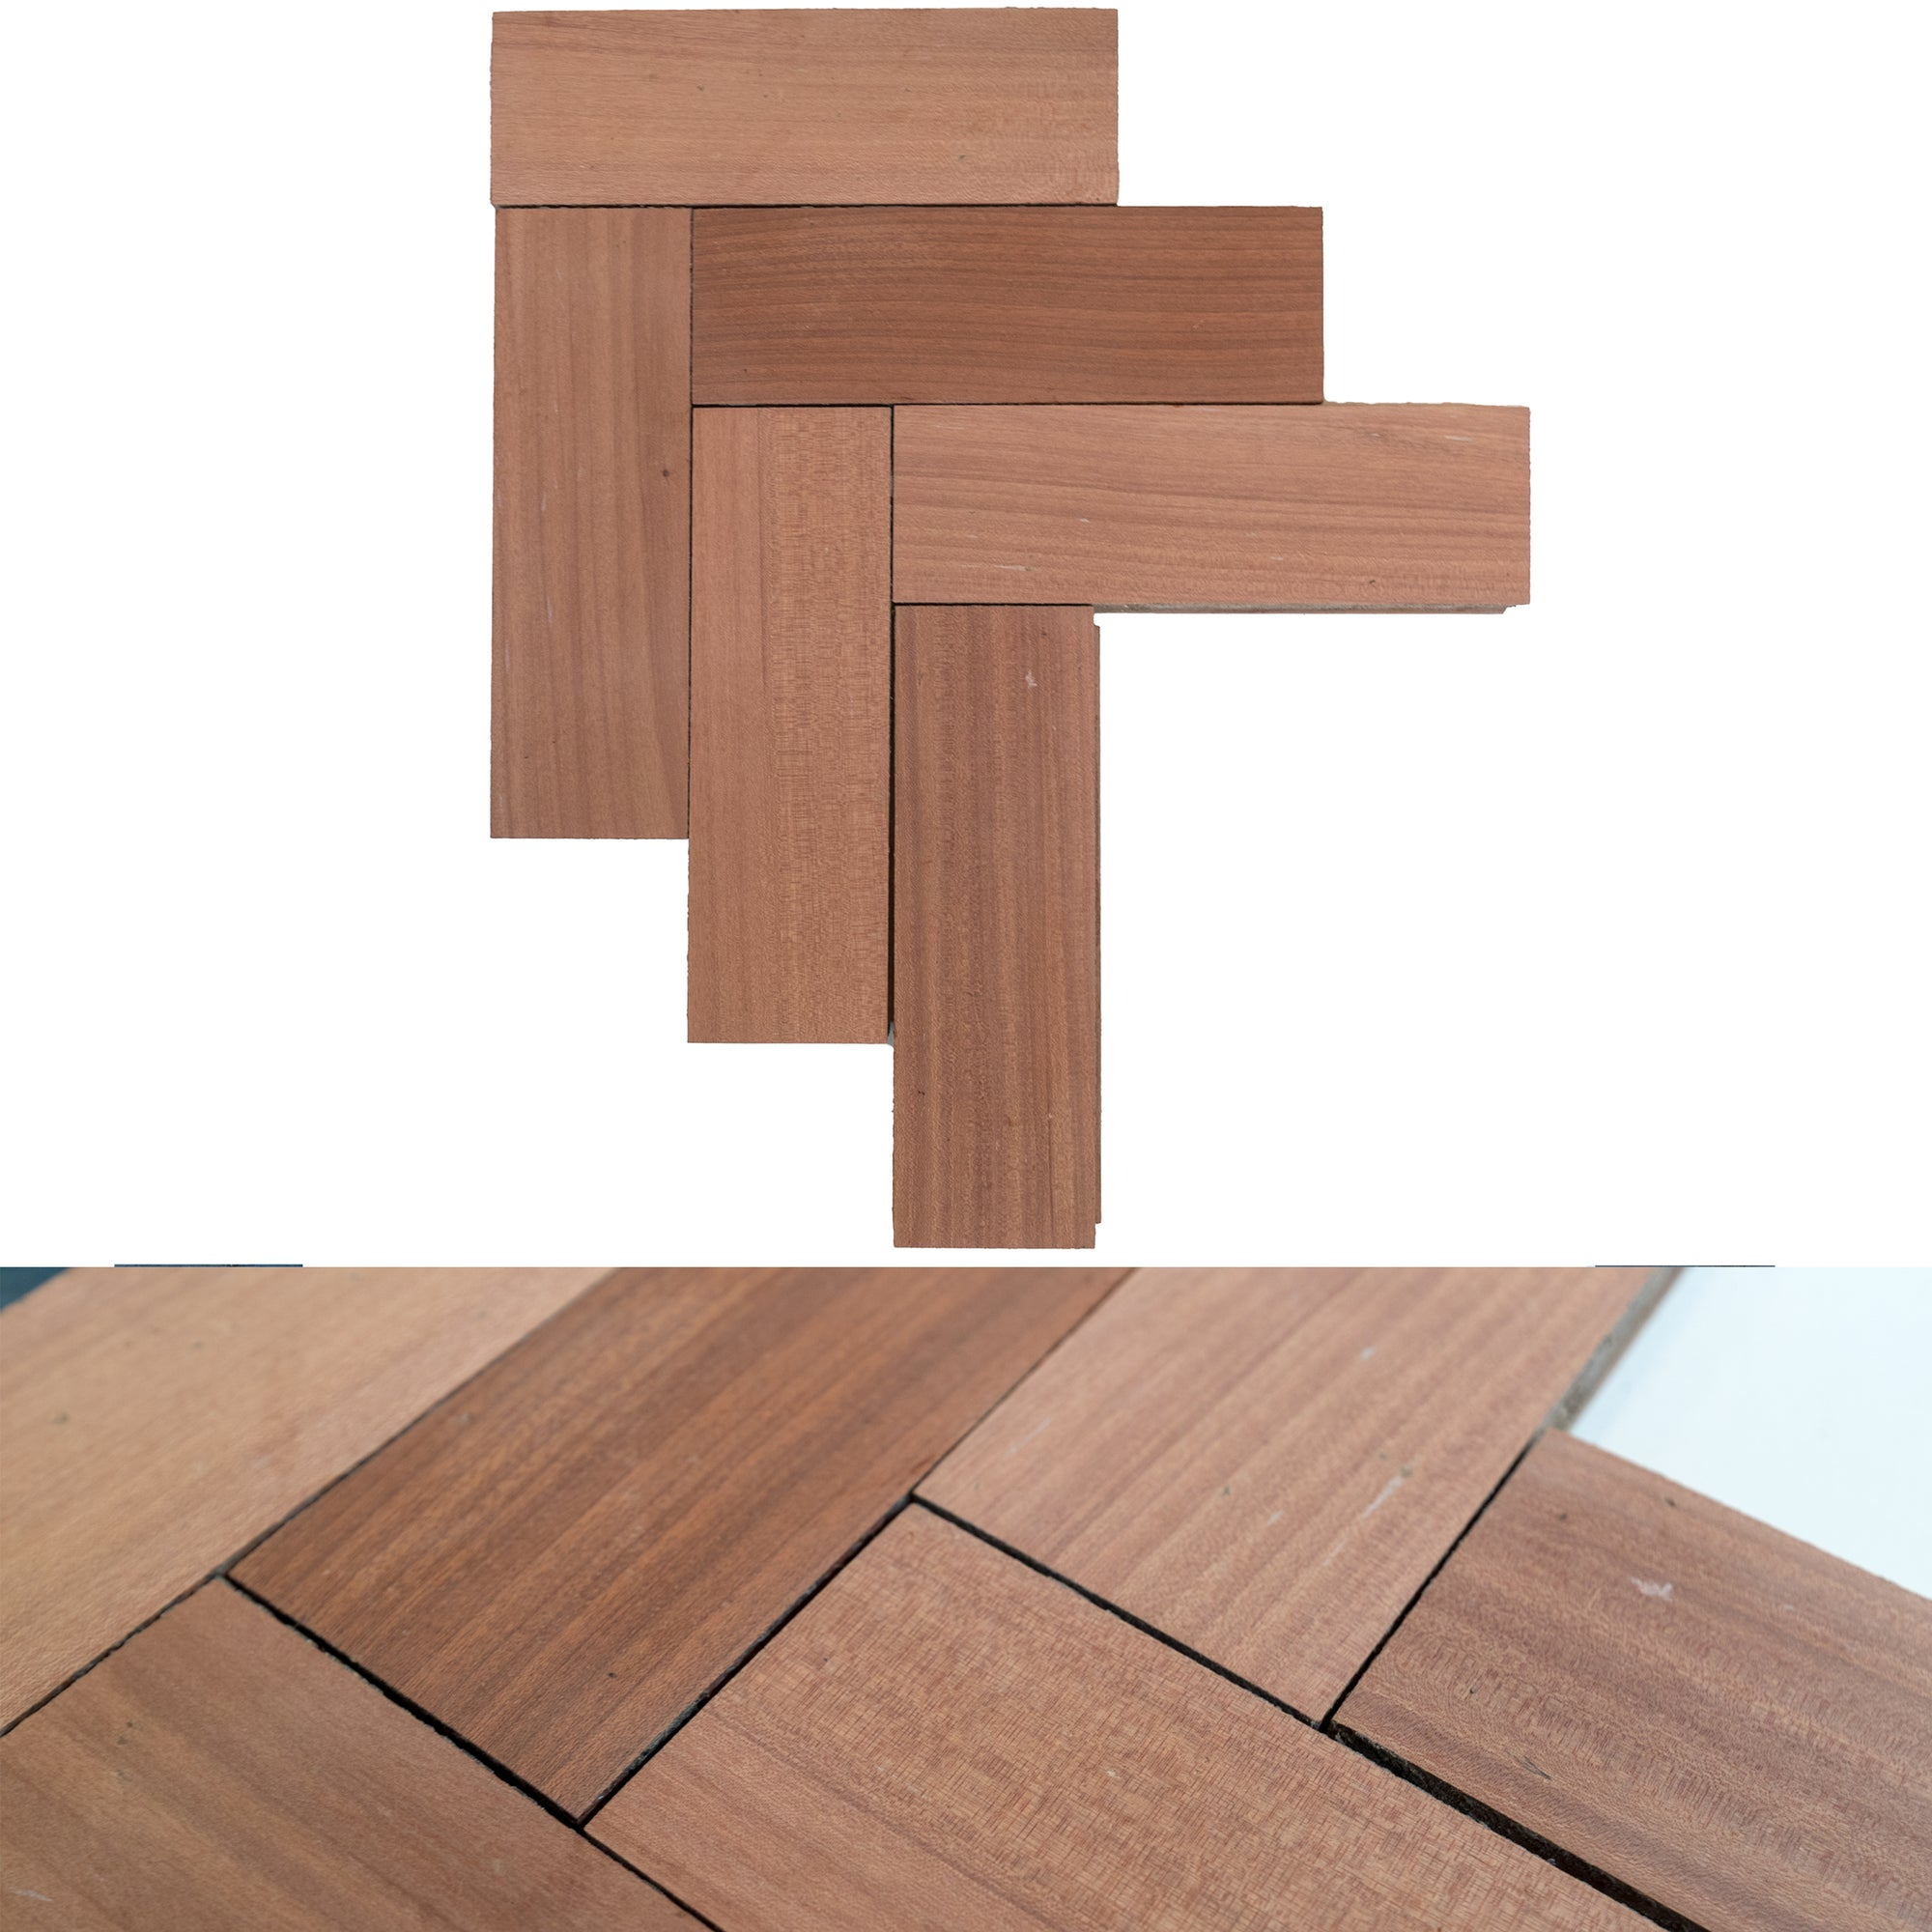 Reclaimed Sapele Parquet Flooring 178m² Available - architectural-forum